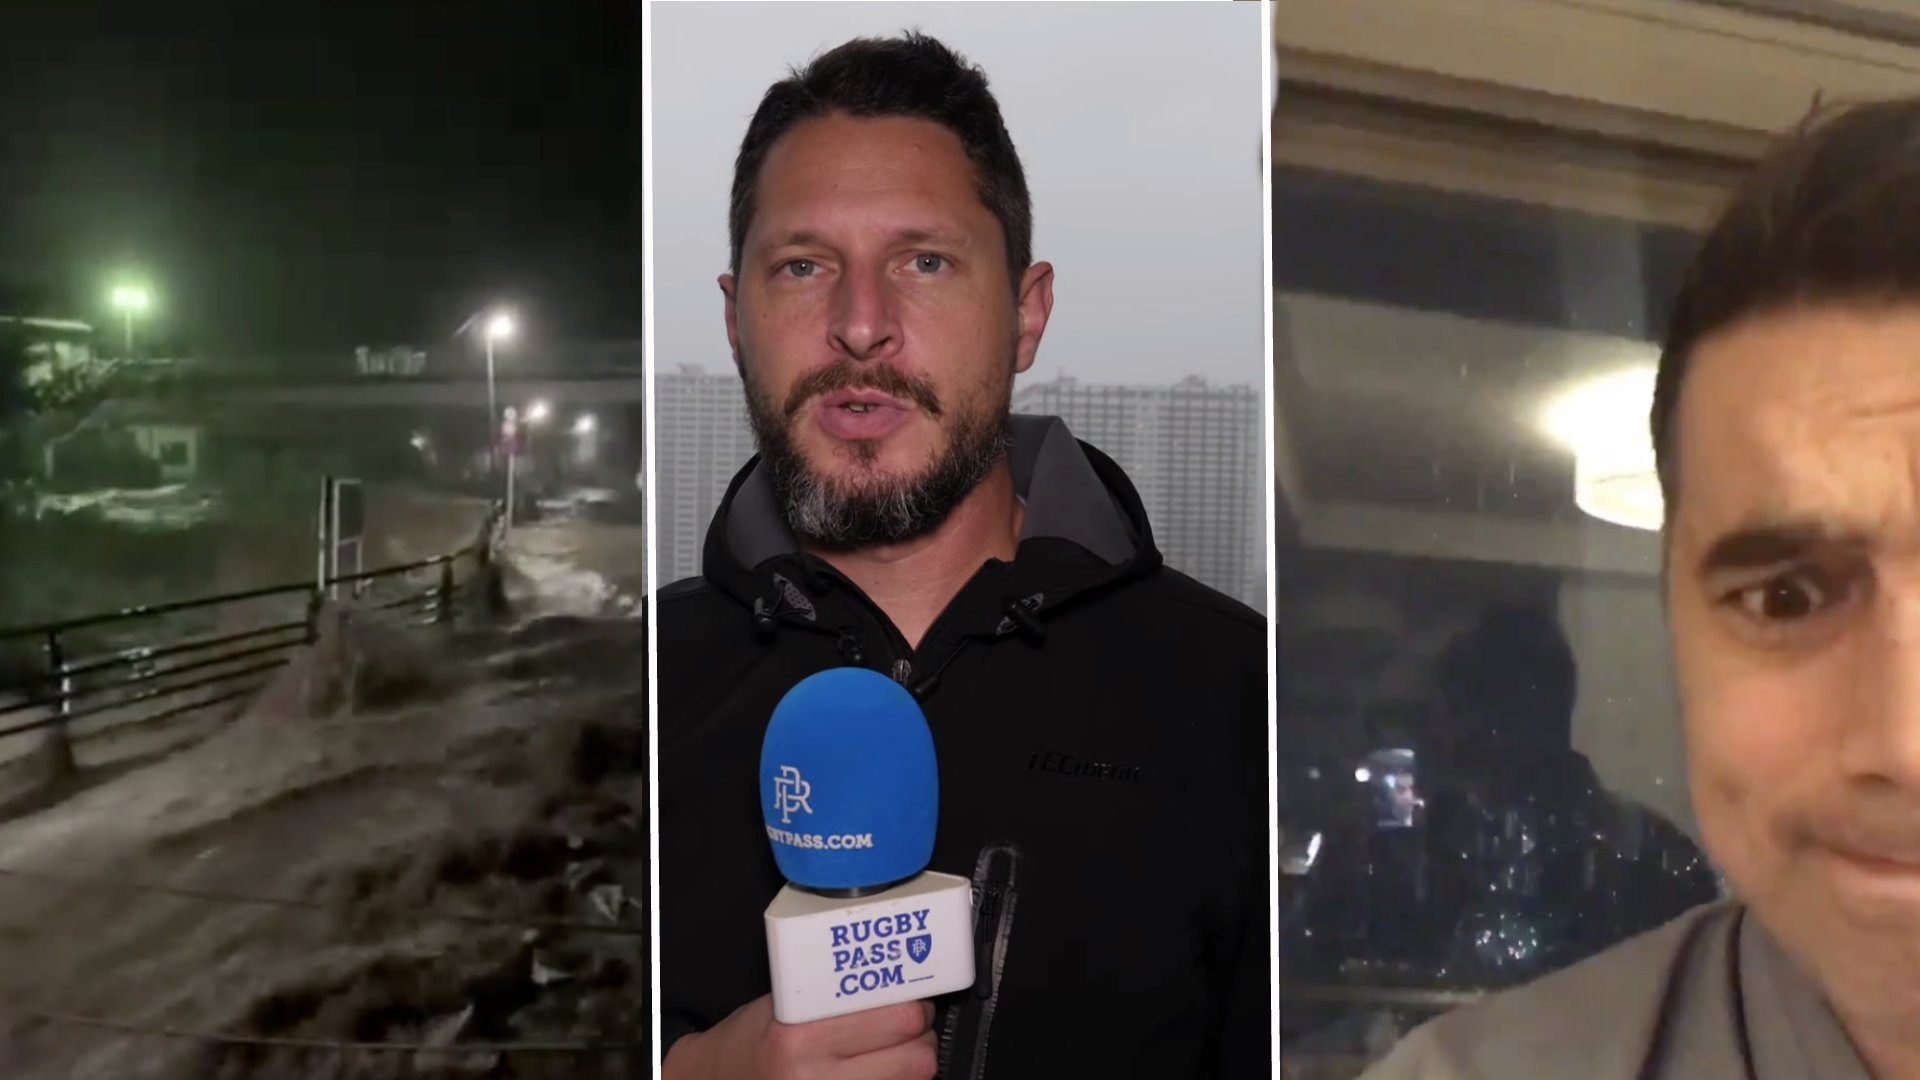 Players, fans and media share incredible footage of Typhoon Hagibis and it's devastation